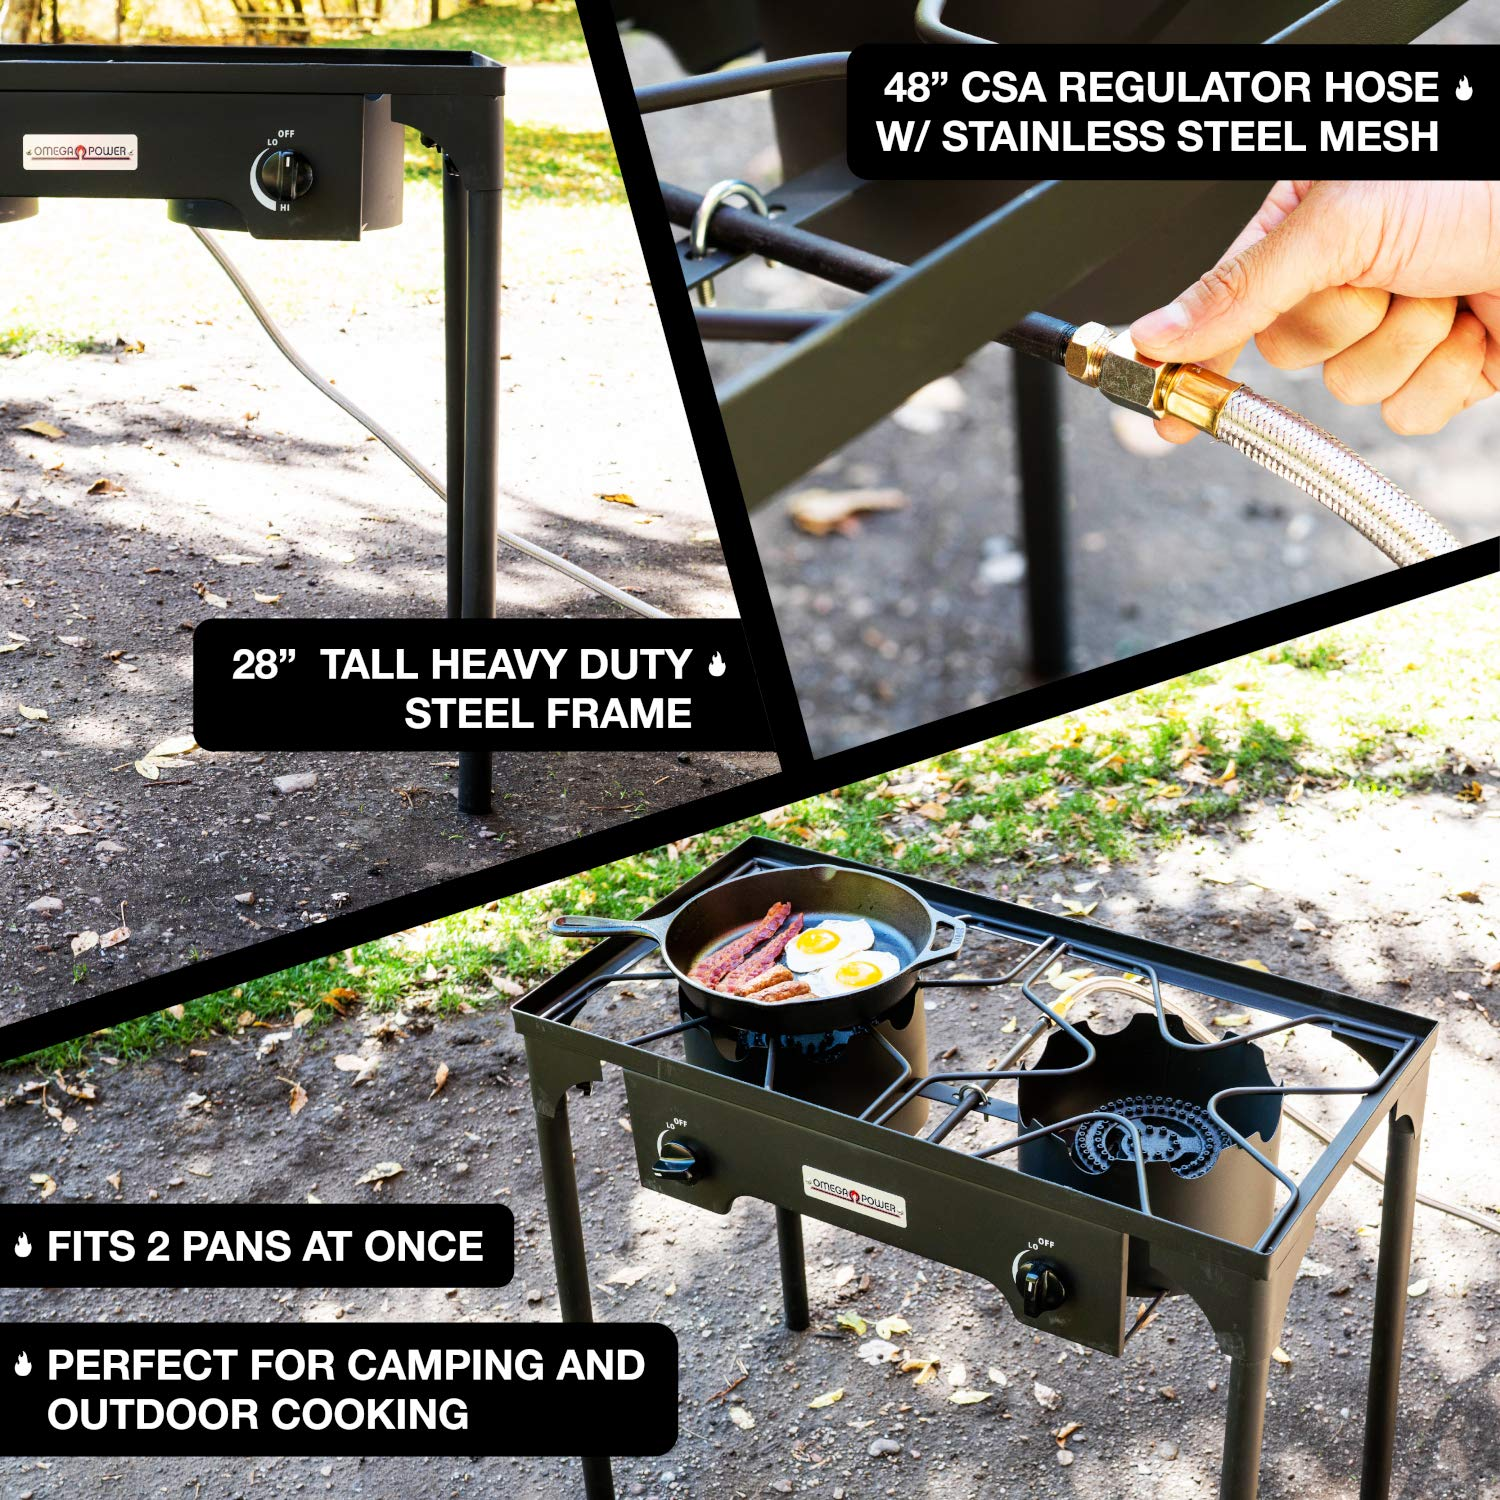 Leaderware High Pressure Gas Cooking Stove with 2 Burners, Outdoor Camping Kitchen Accessories by Leaderware (Image #7)